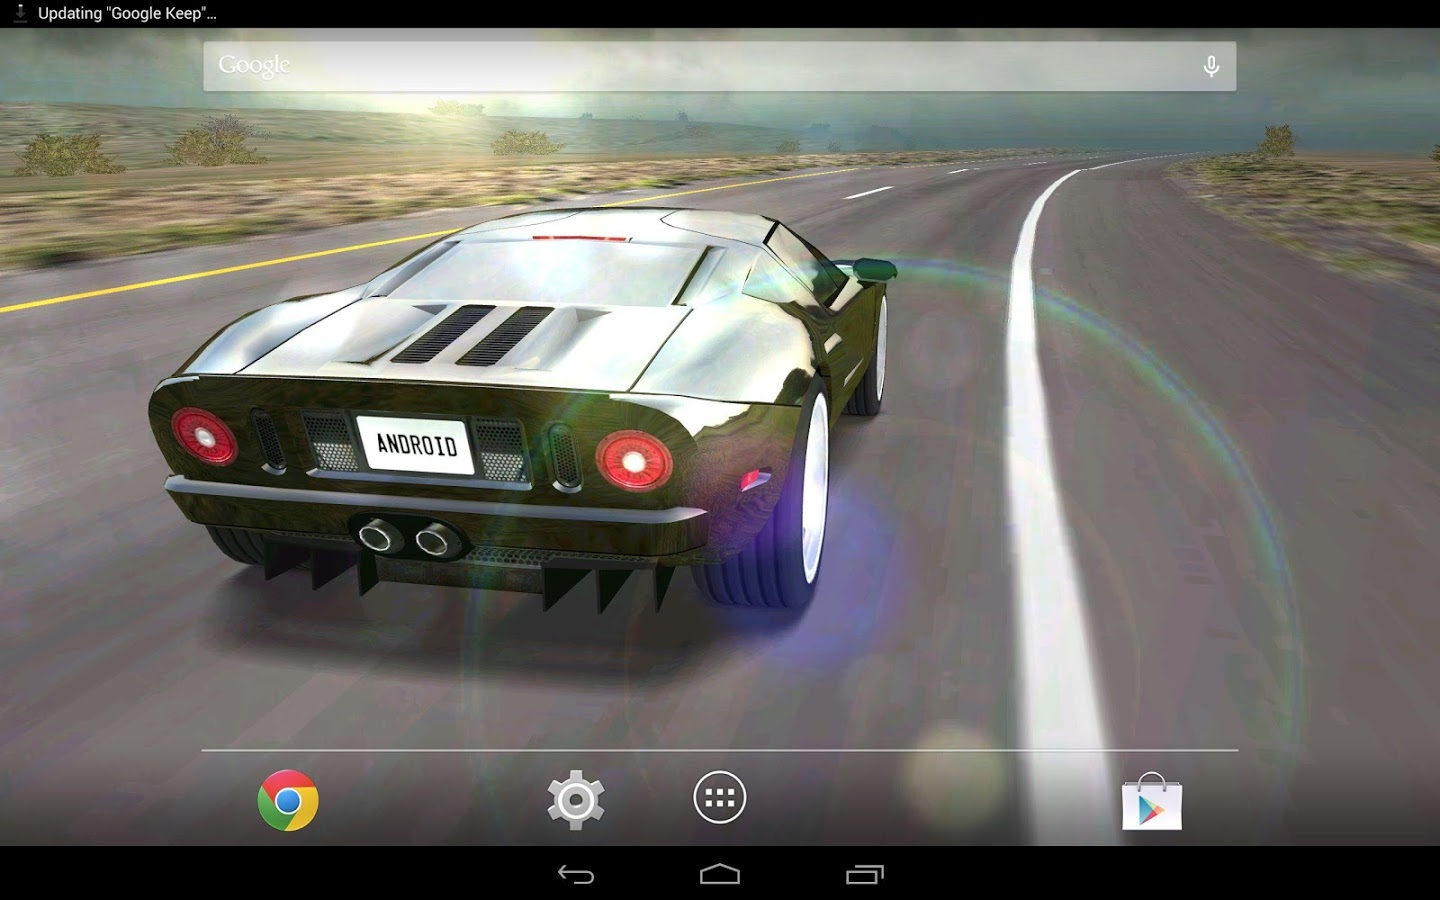 Download 3d Car Live Wallpaper Android Apps On Google Play 1440x900